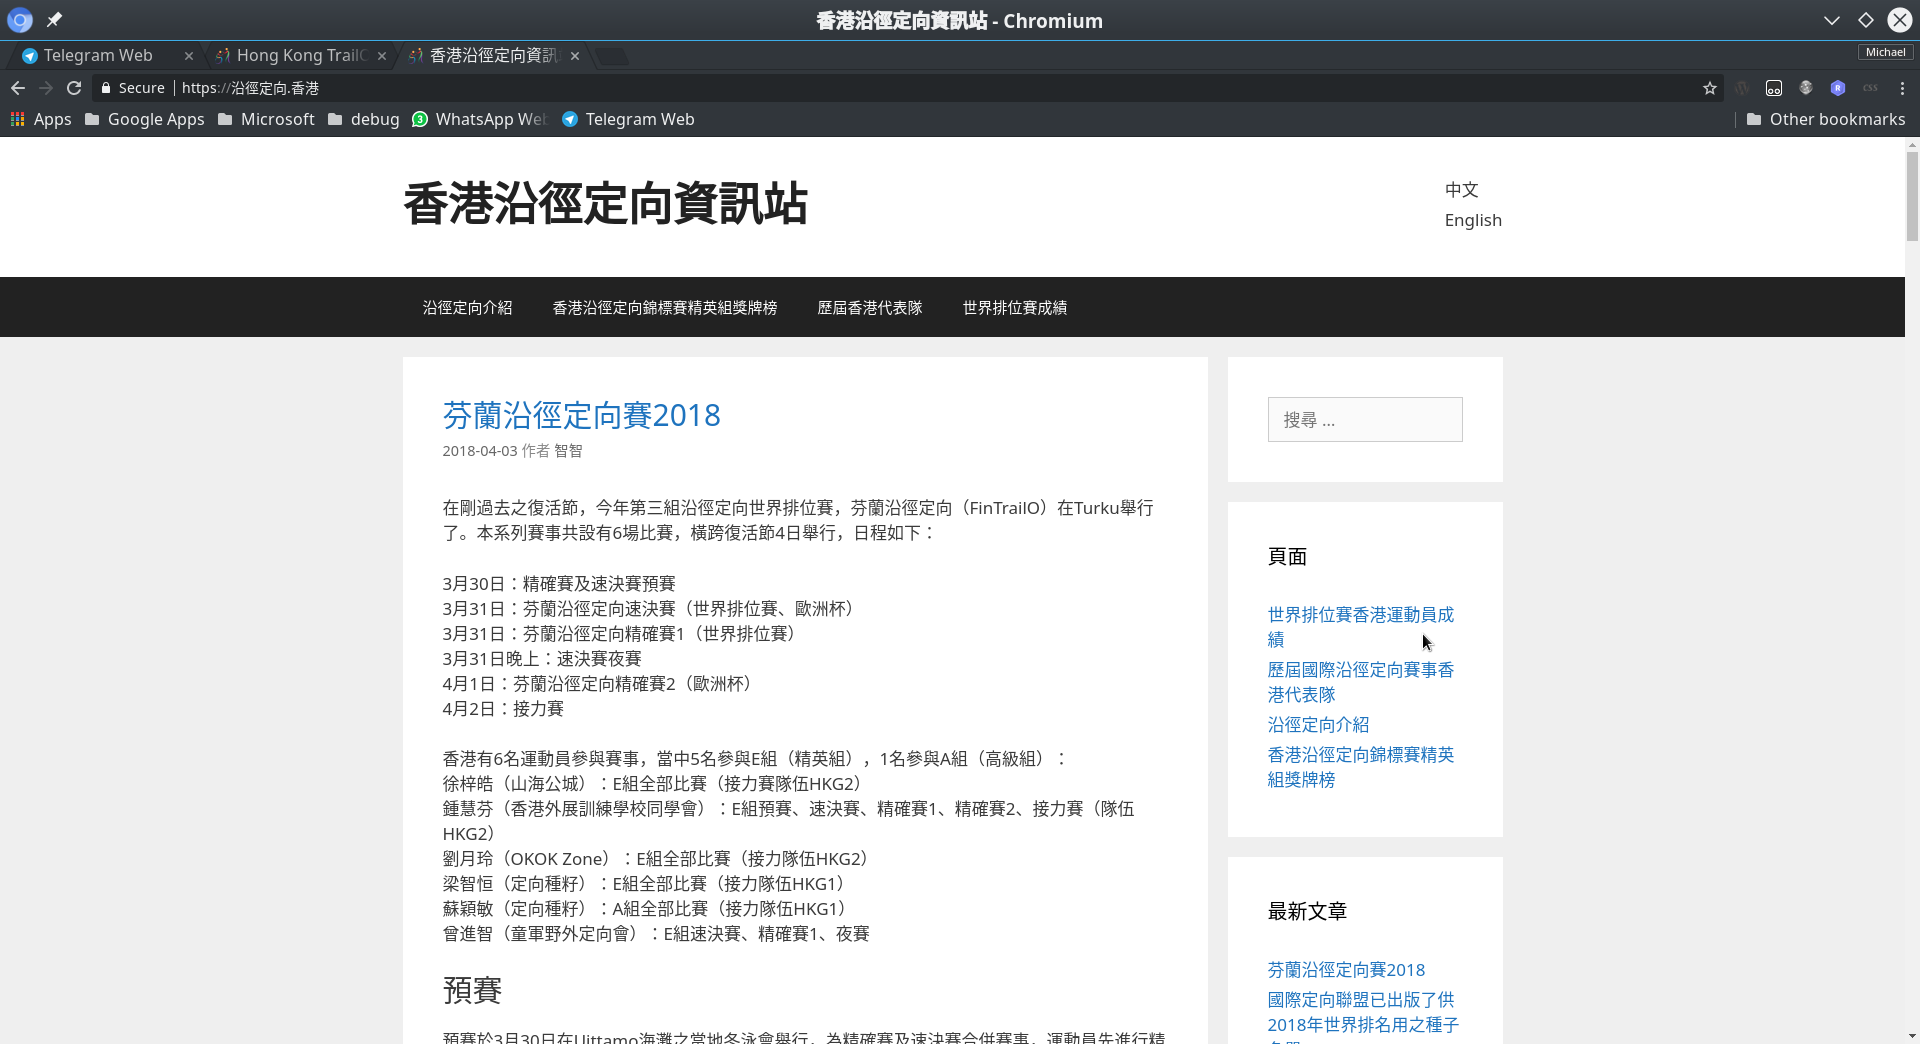 TrailO Chinese site